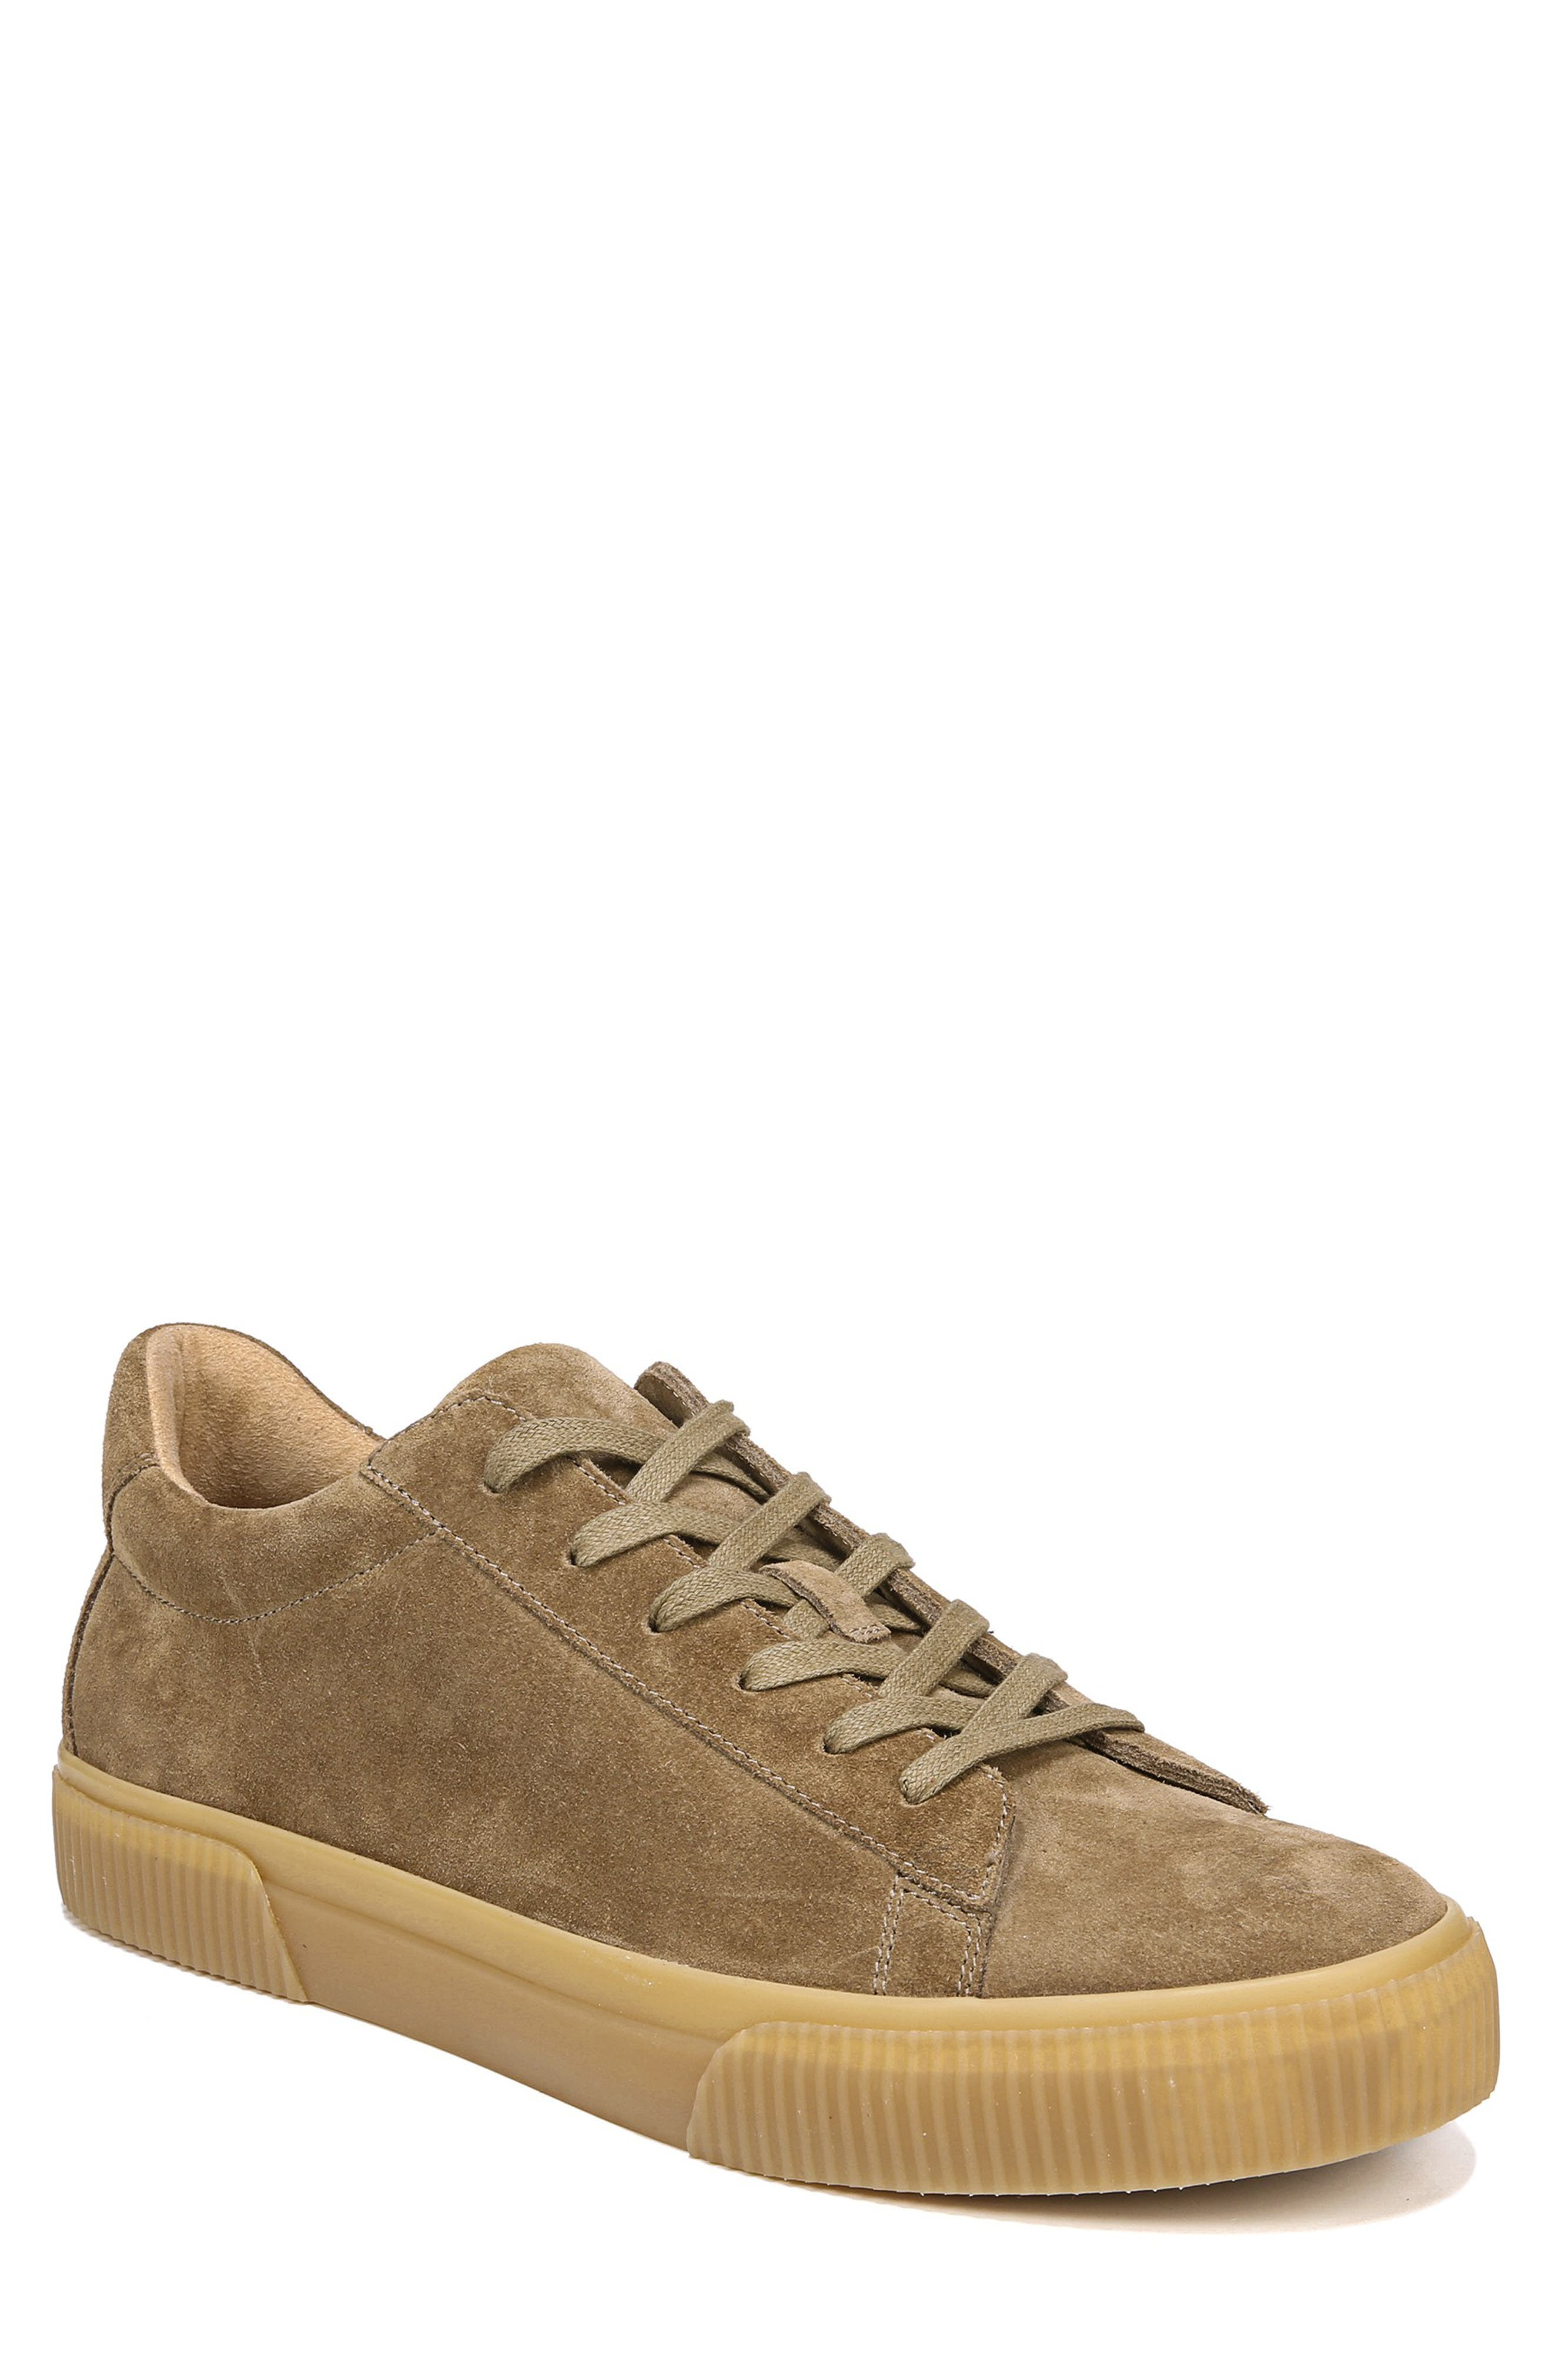 Kurtis Sneaker,                             Main thumbnail 1, color,                             Flint